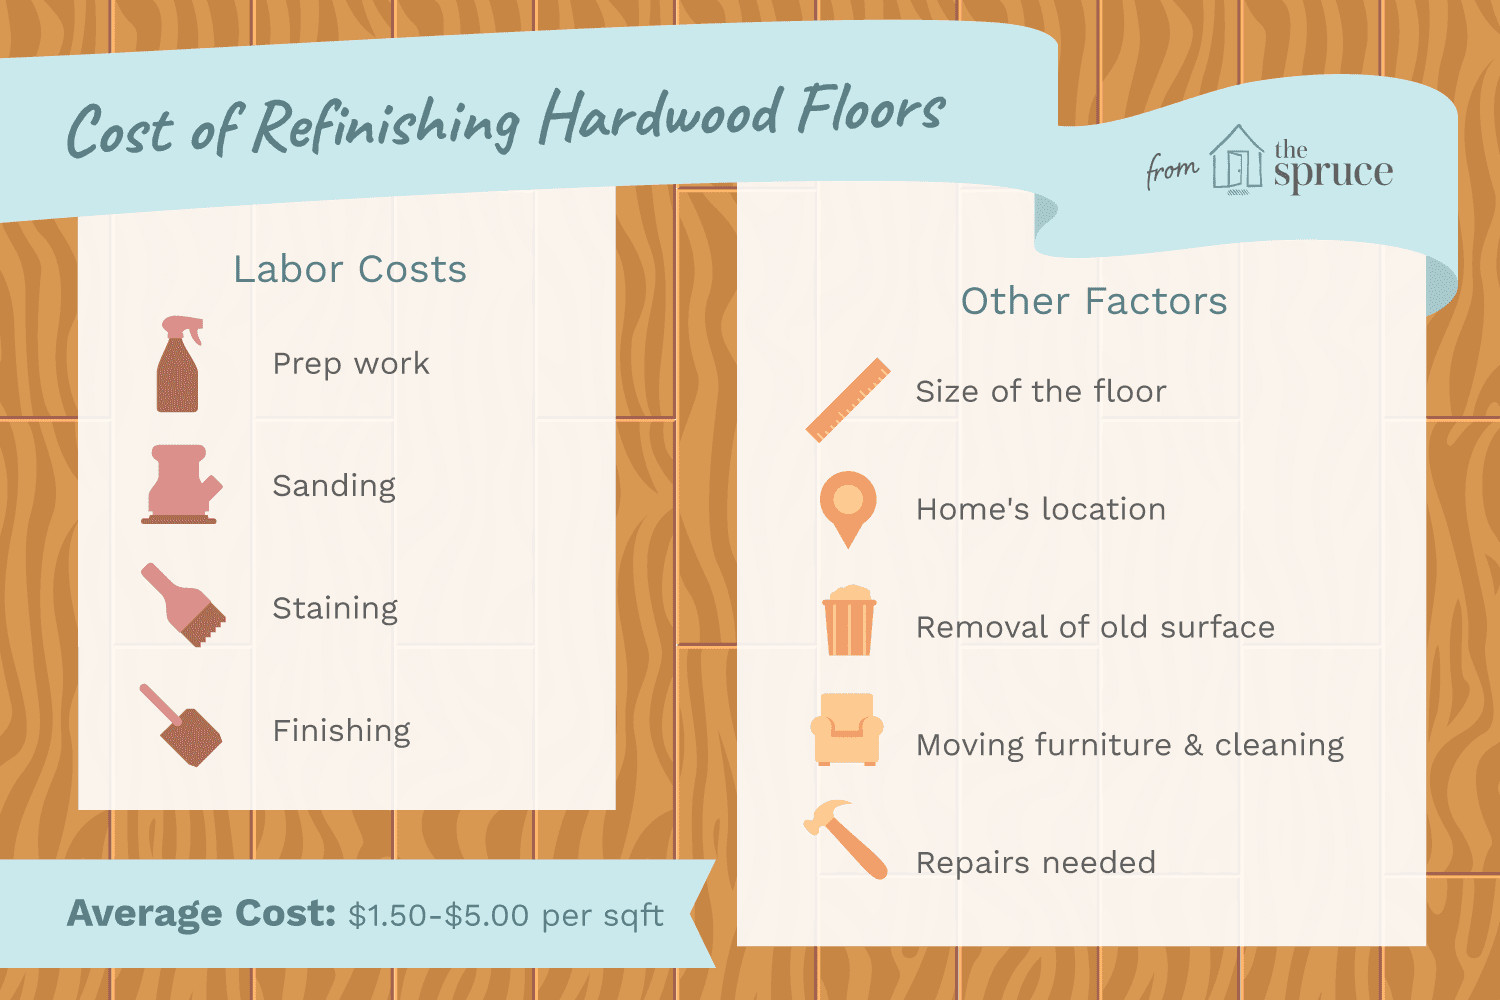 how to restore hardwood floors without refinishing of the cost to refinish hardwood floors in cost to refinish hardwood floors 1314853 final 5bb6259346e0fb0026825ce2